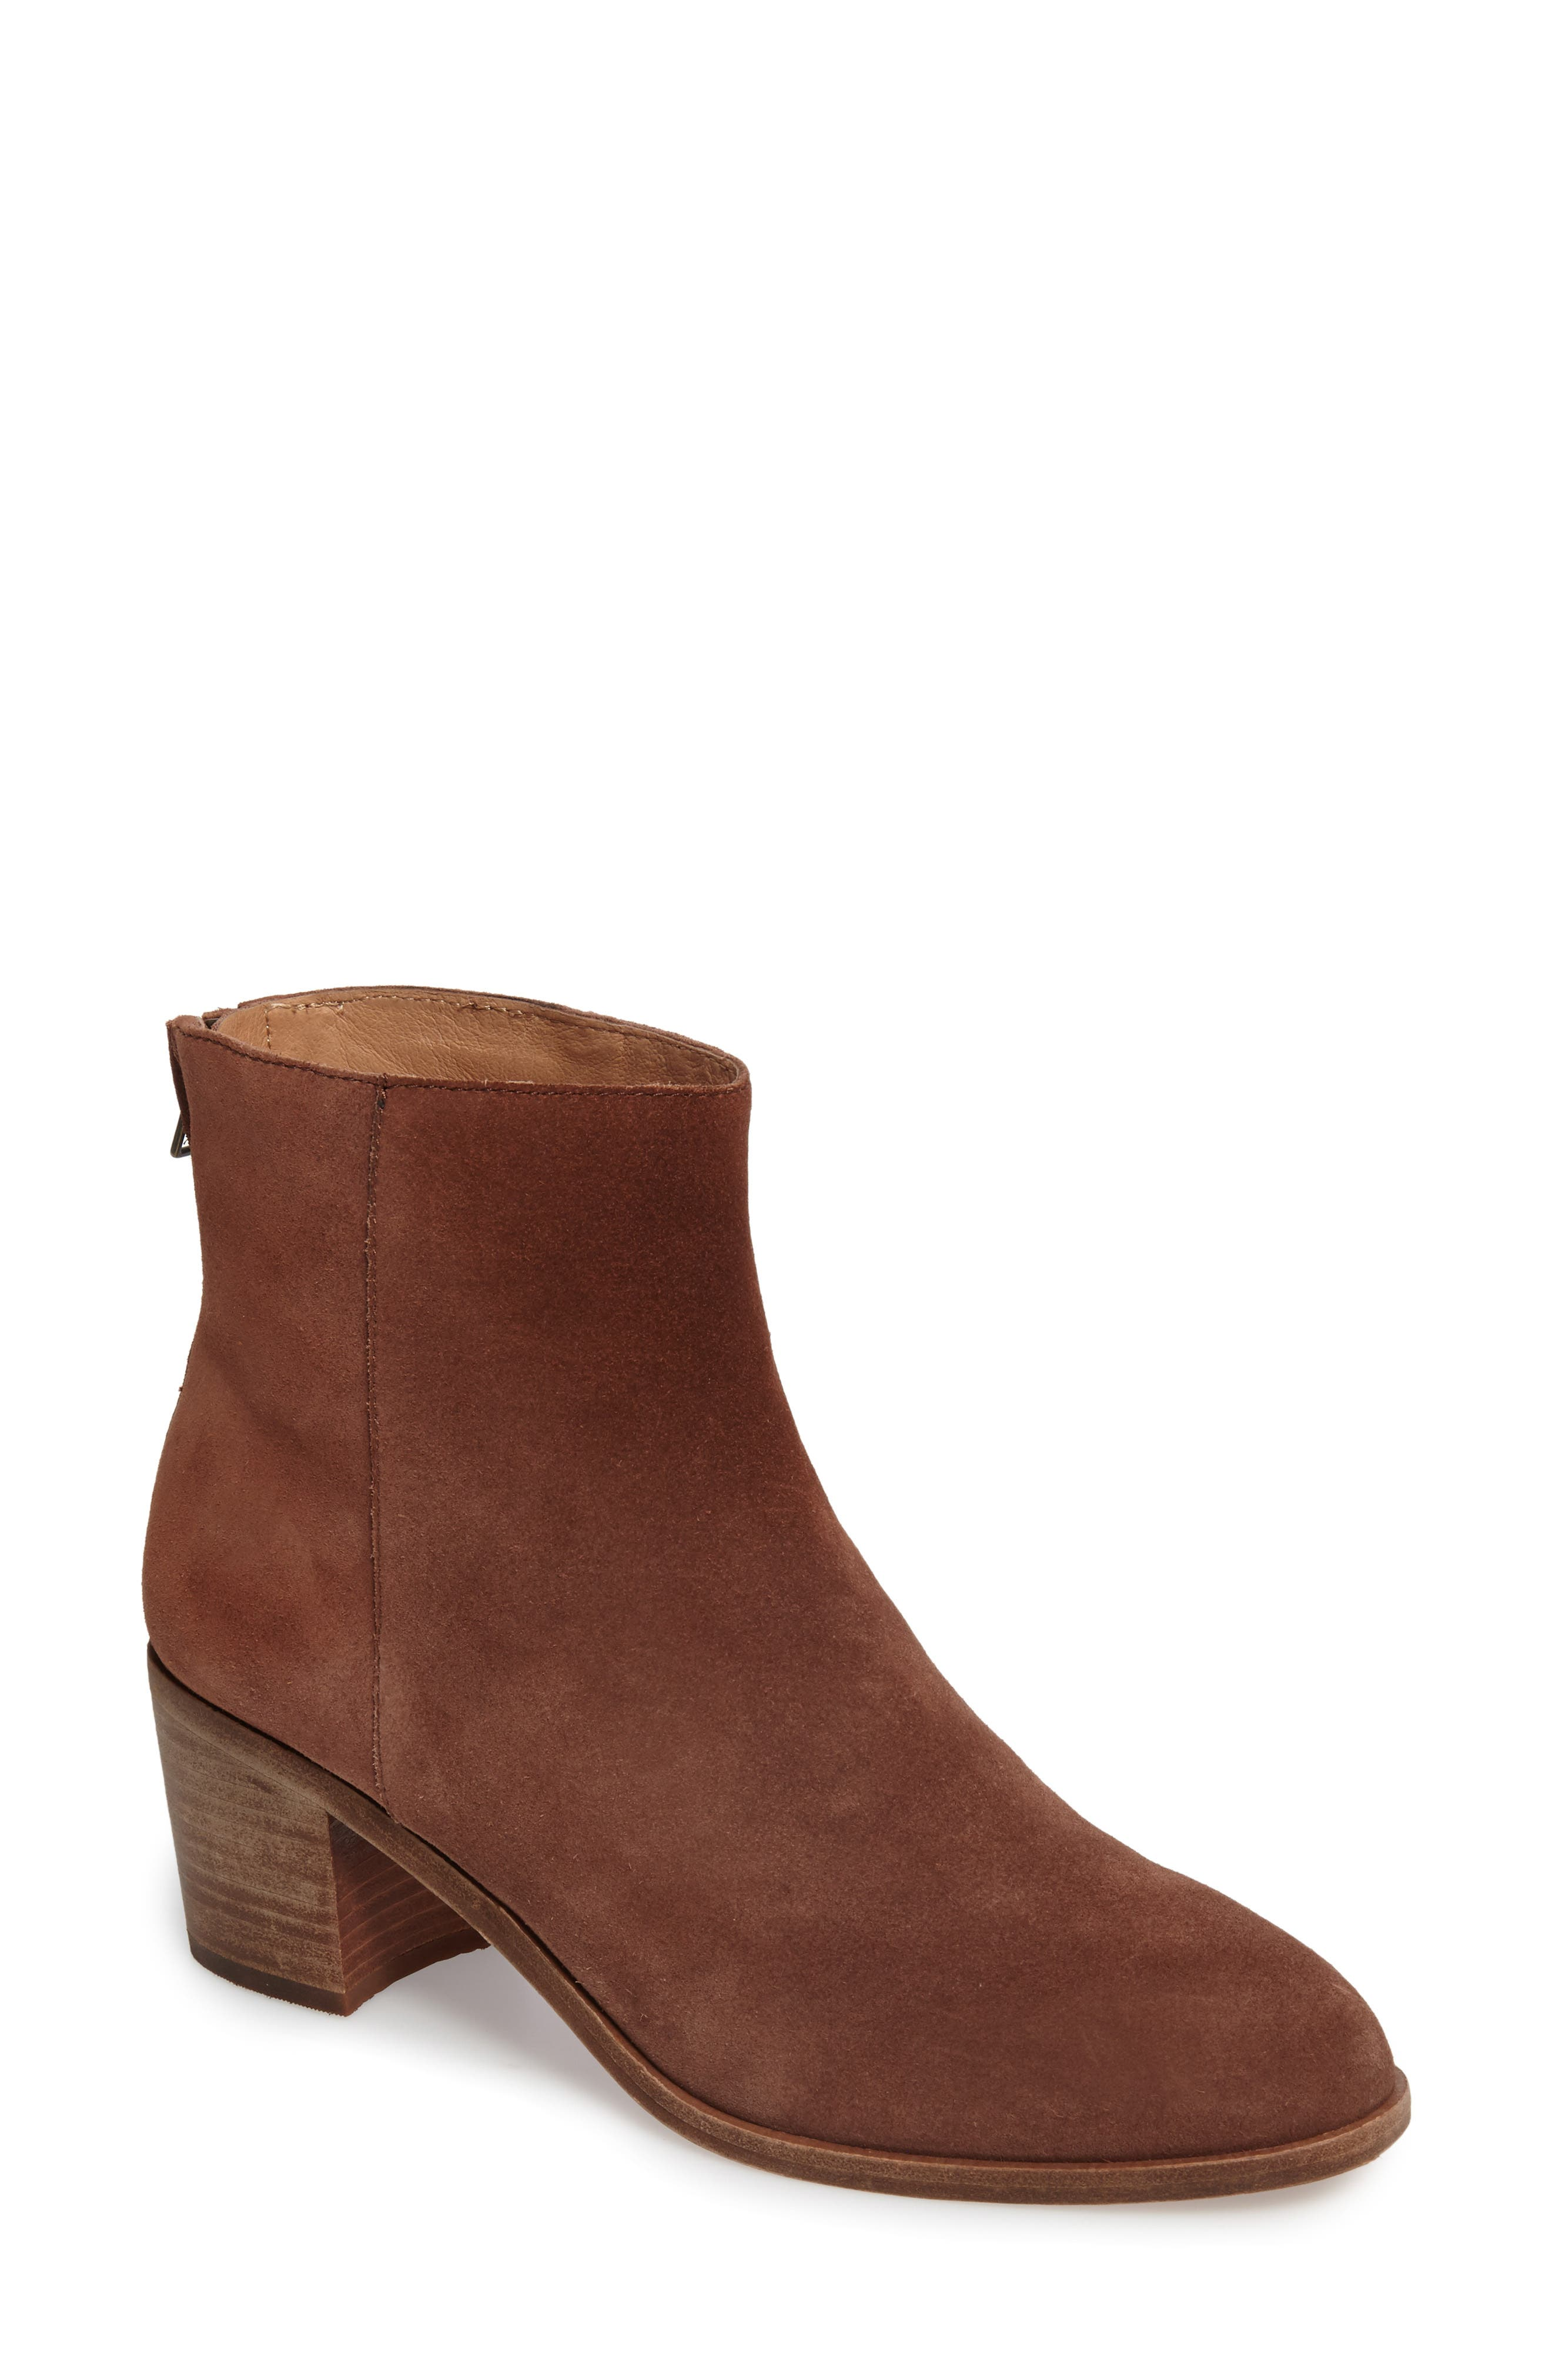 Alternate Image 1 Selected - Madewell Pauline Bootie (Women)